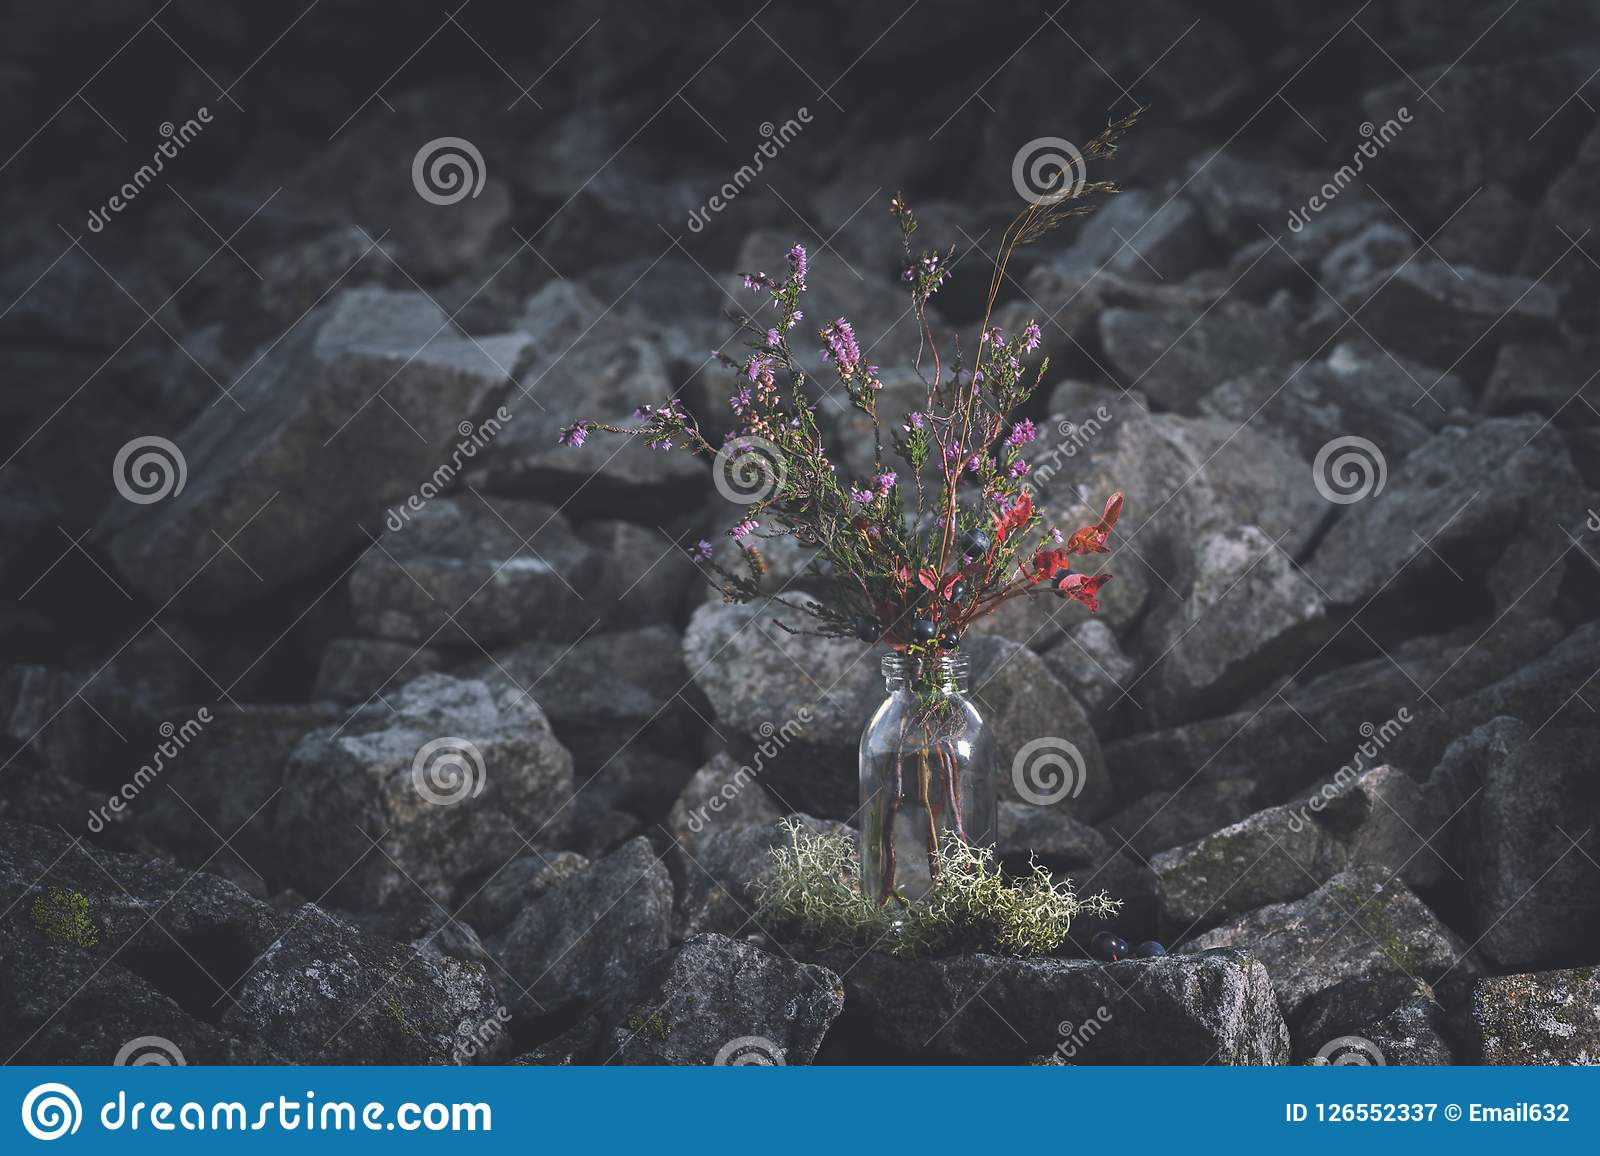 Summer Bouquet Of Wild Blueberries And Blossom Heather Stock Image Image Of Branch Fresh 126552337